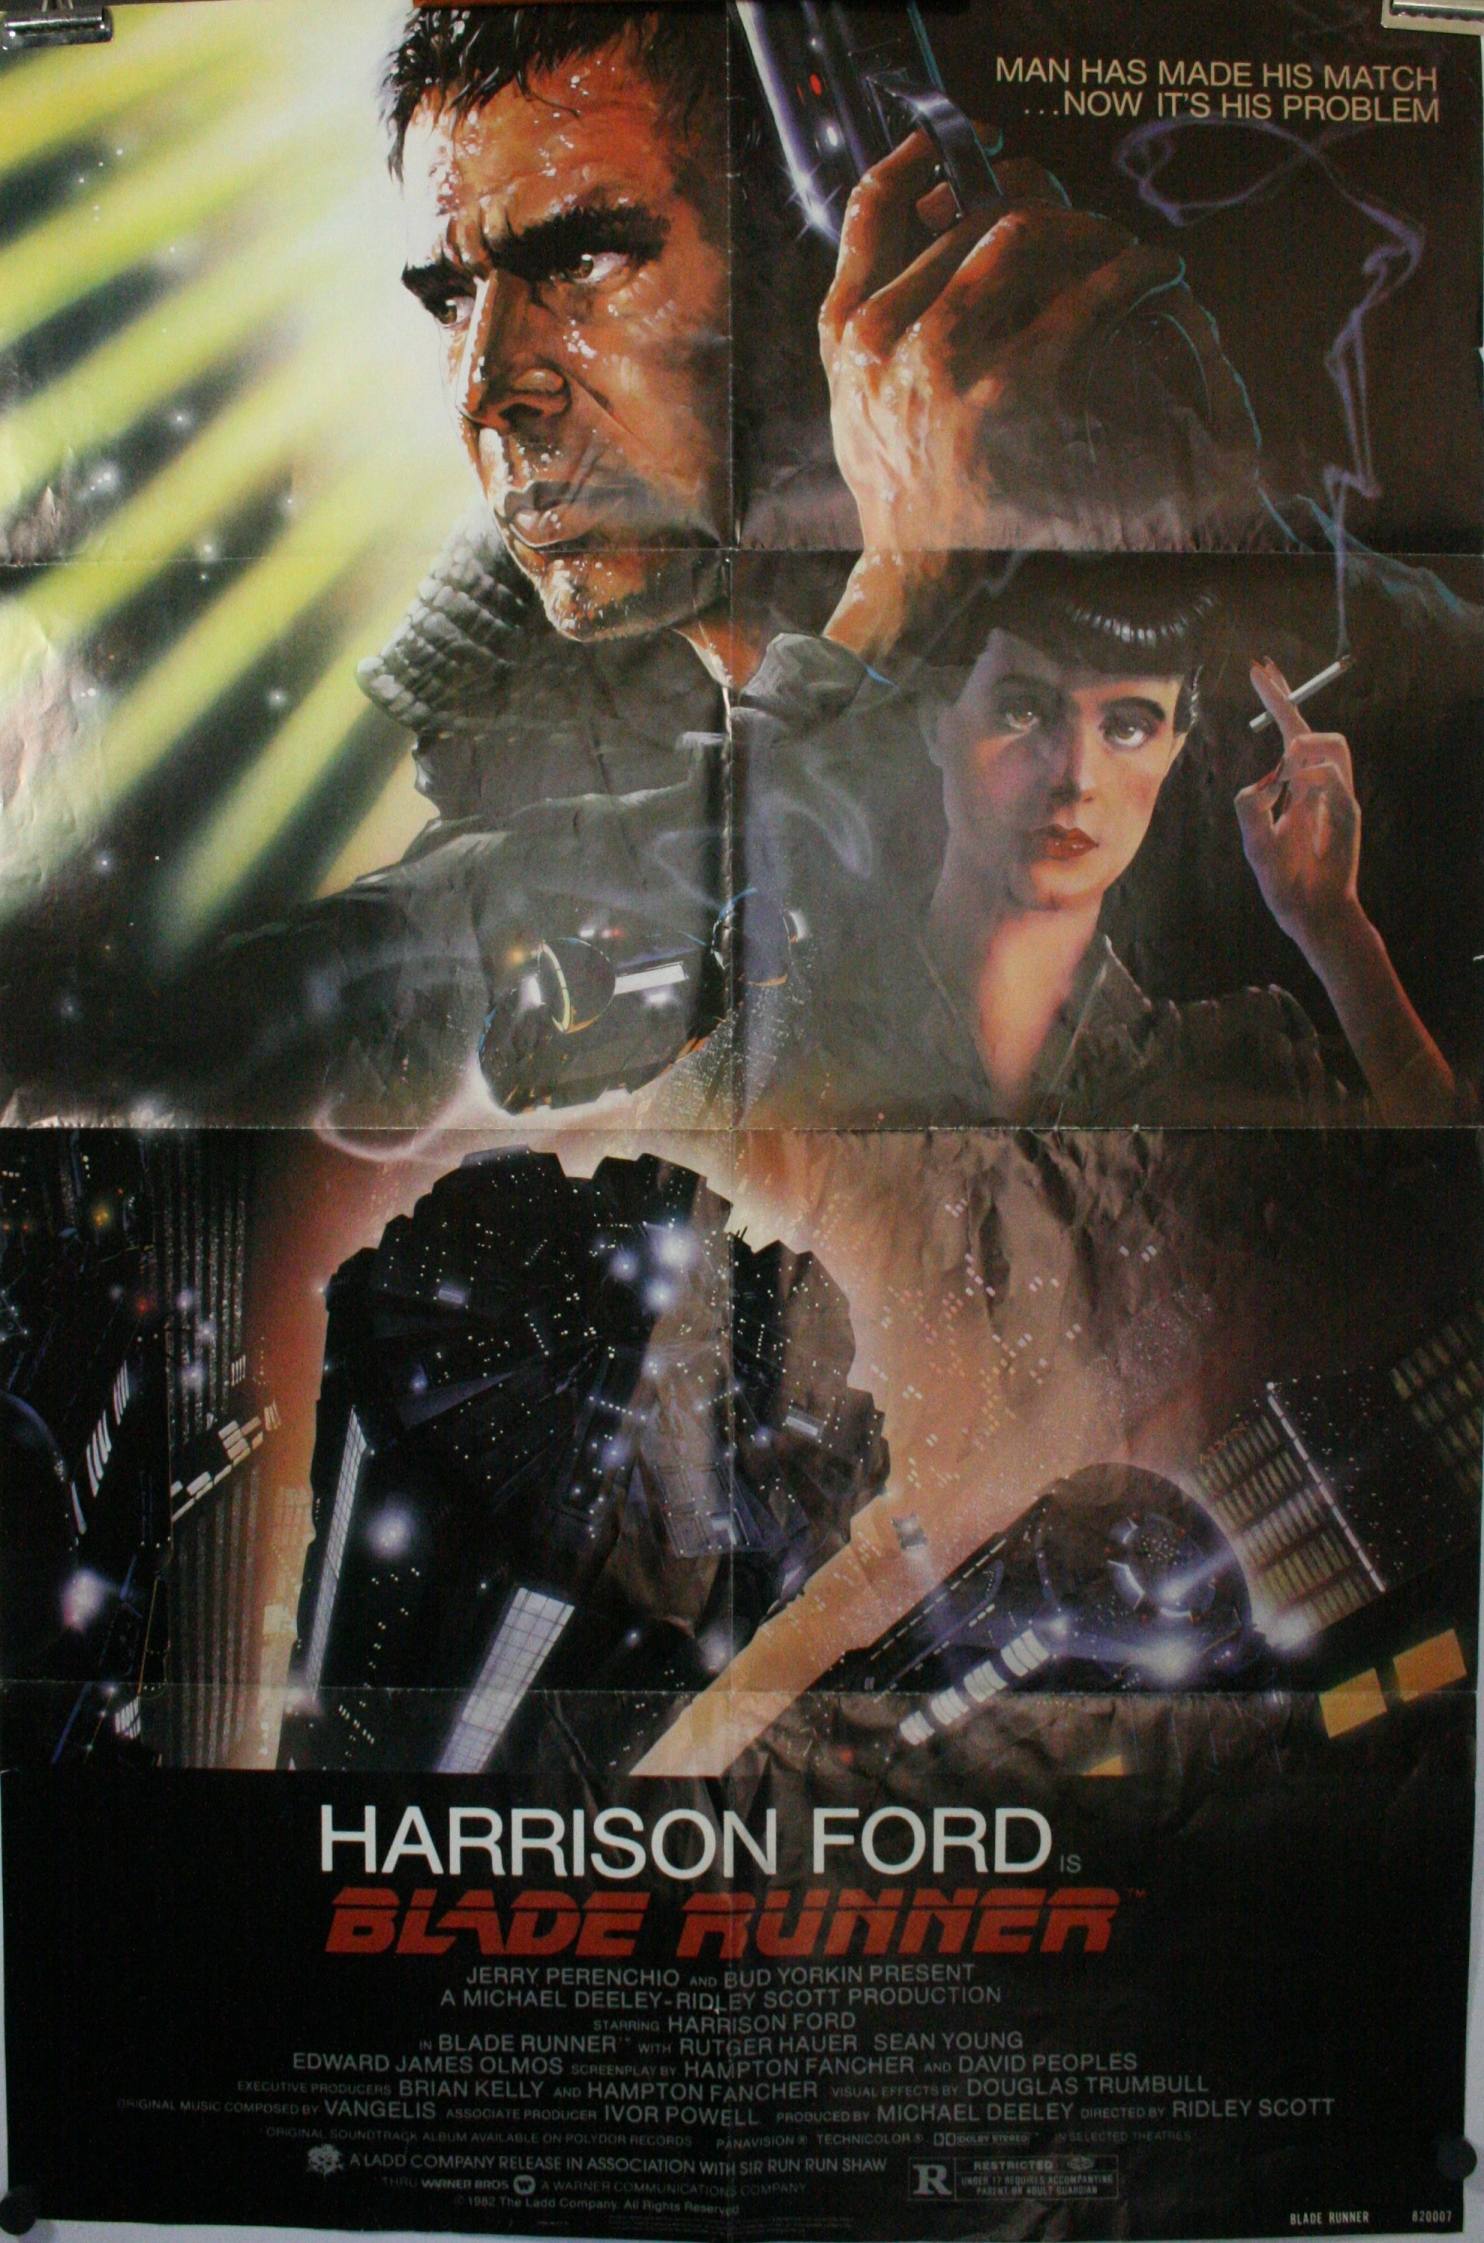 BLADE RUNNER, Harrison Ford Original Movie Theater Poster - photo#23